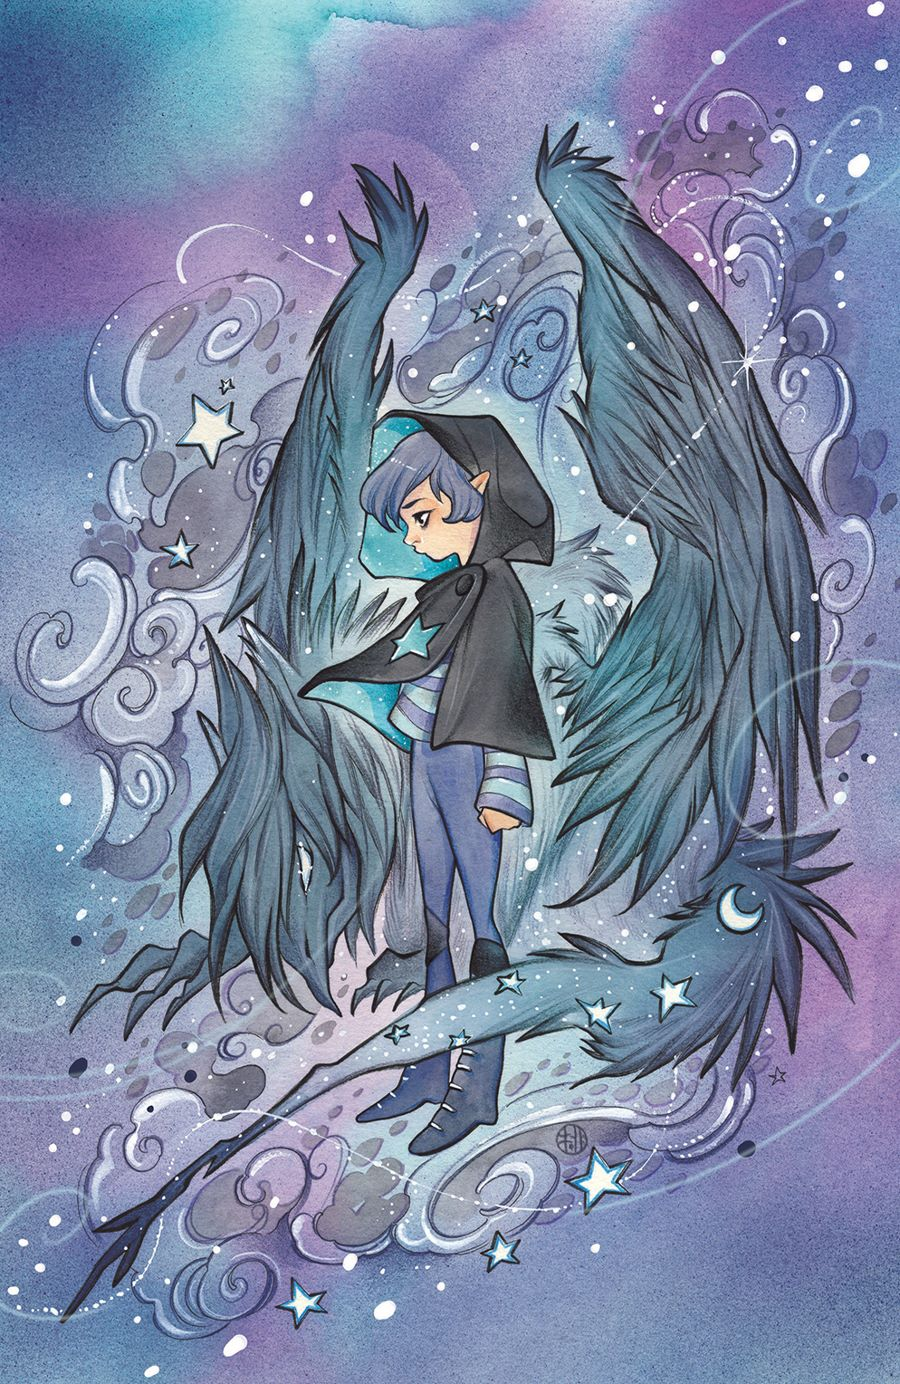 Wynd_002_Cover_Variant ComicList: BOOM! Studios New Releases for 07/22/2020